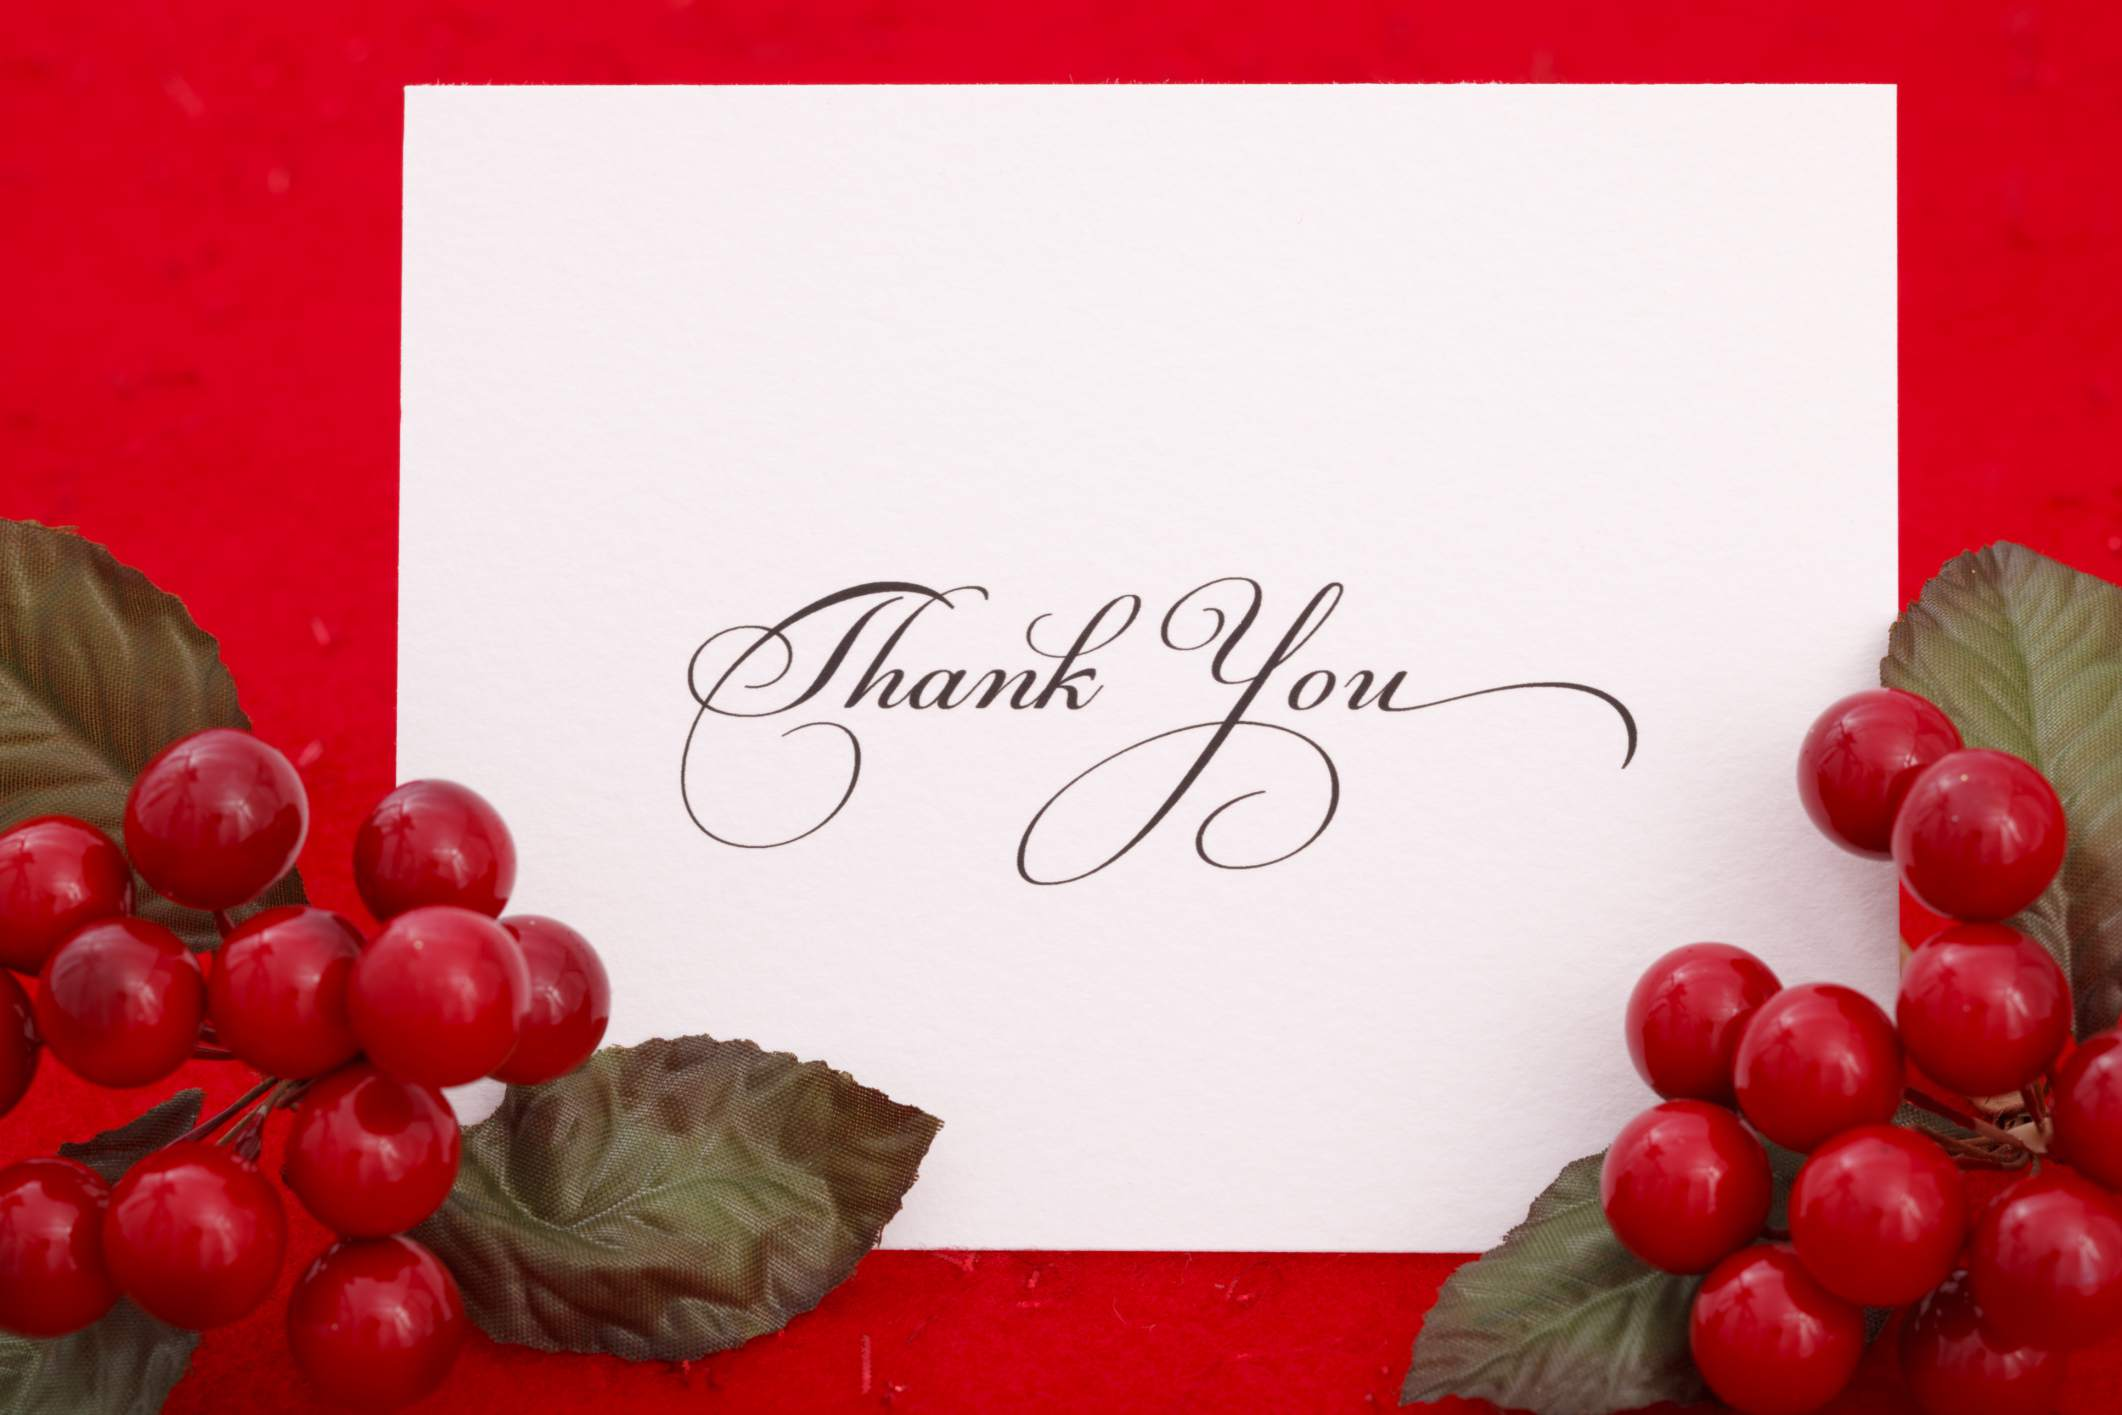 Holiday Thank You Letter from www.thebalancecareers.com